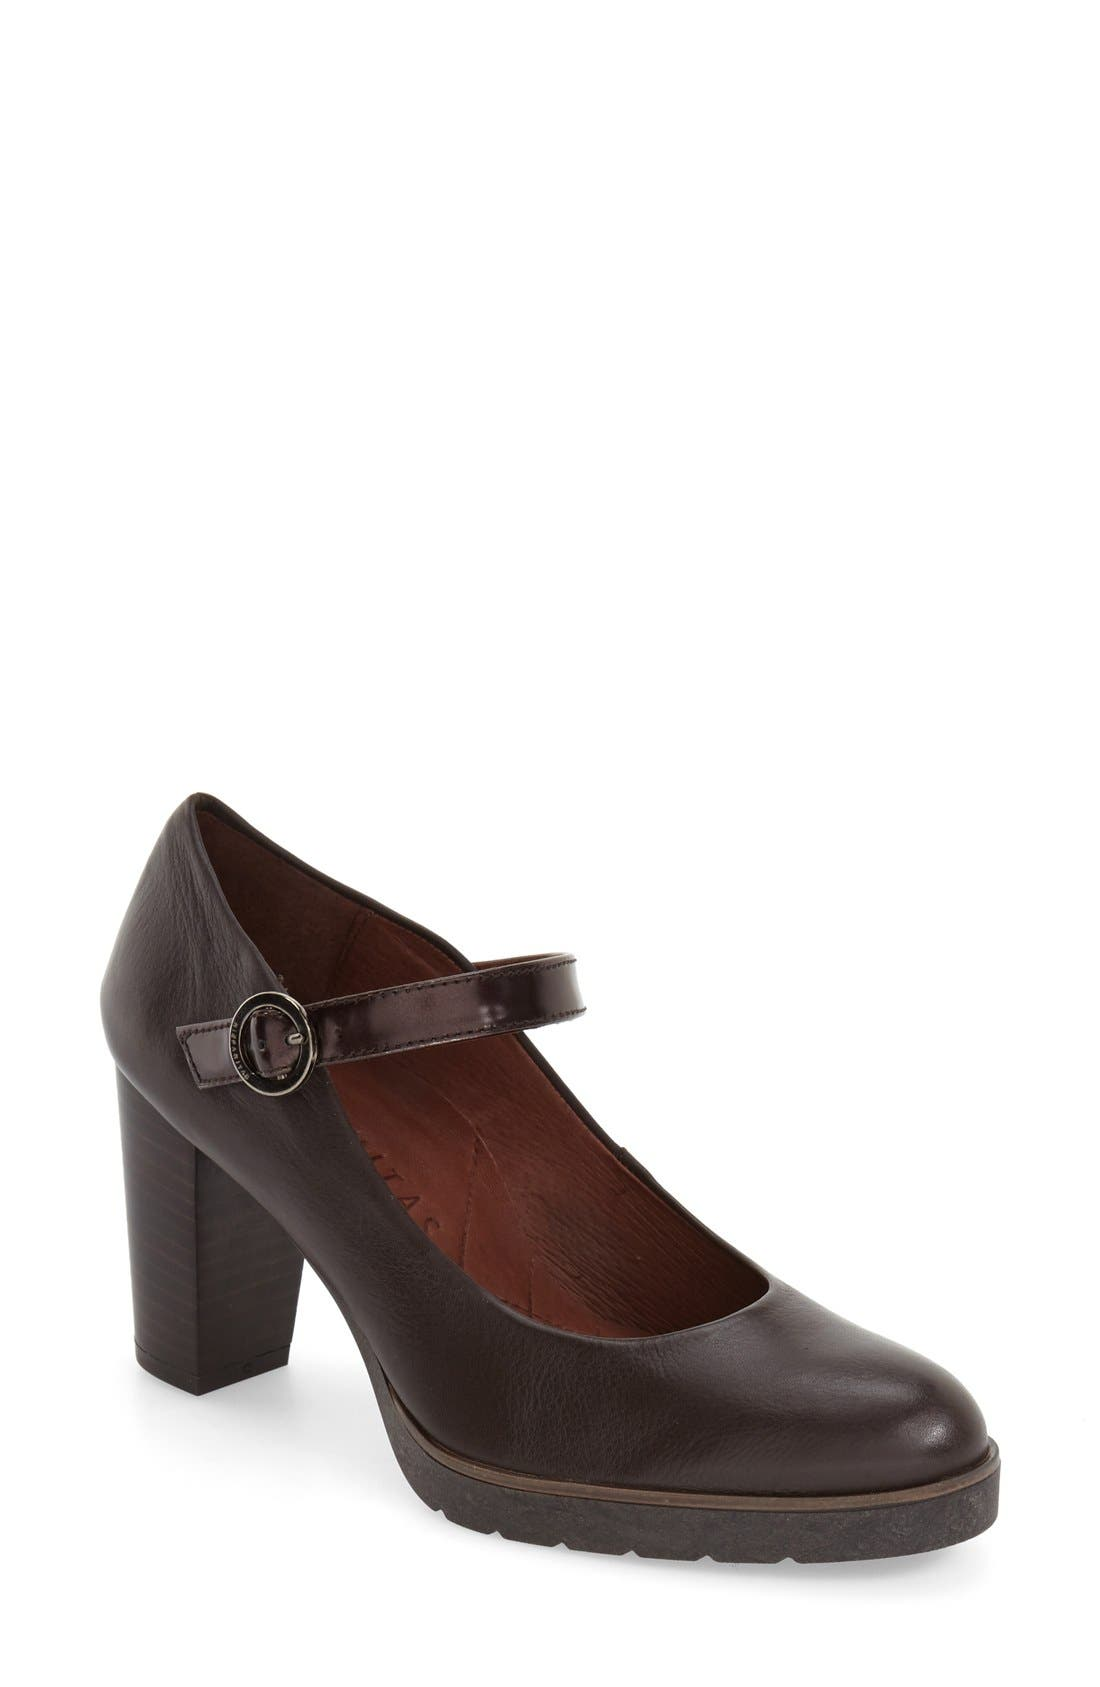 'Veda' Mary Jane Pump,                             Main thumbnail 1, color,                             Brown Leather